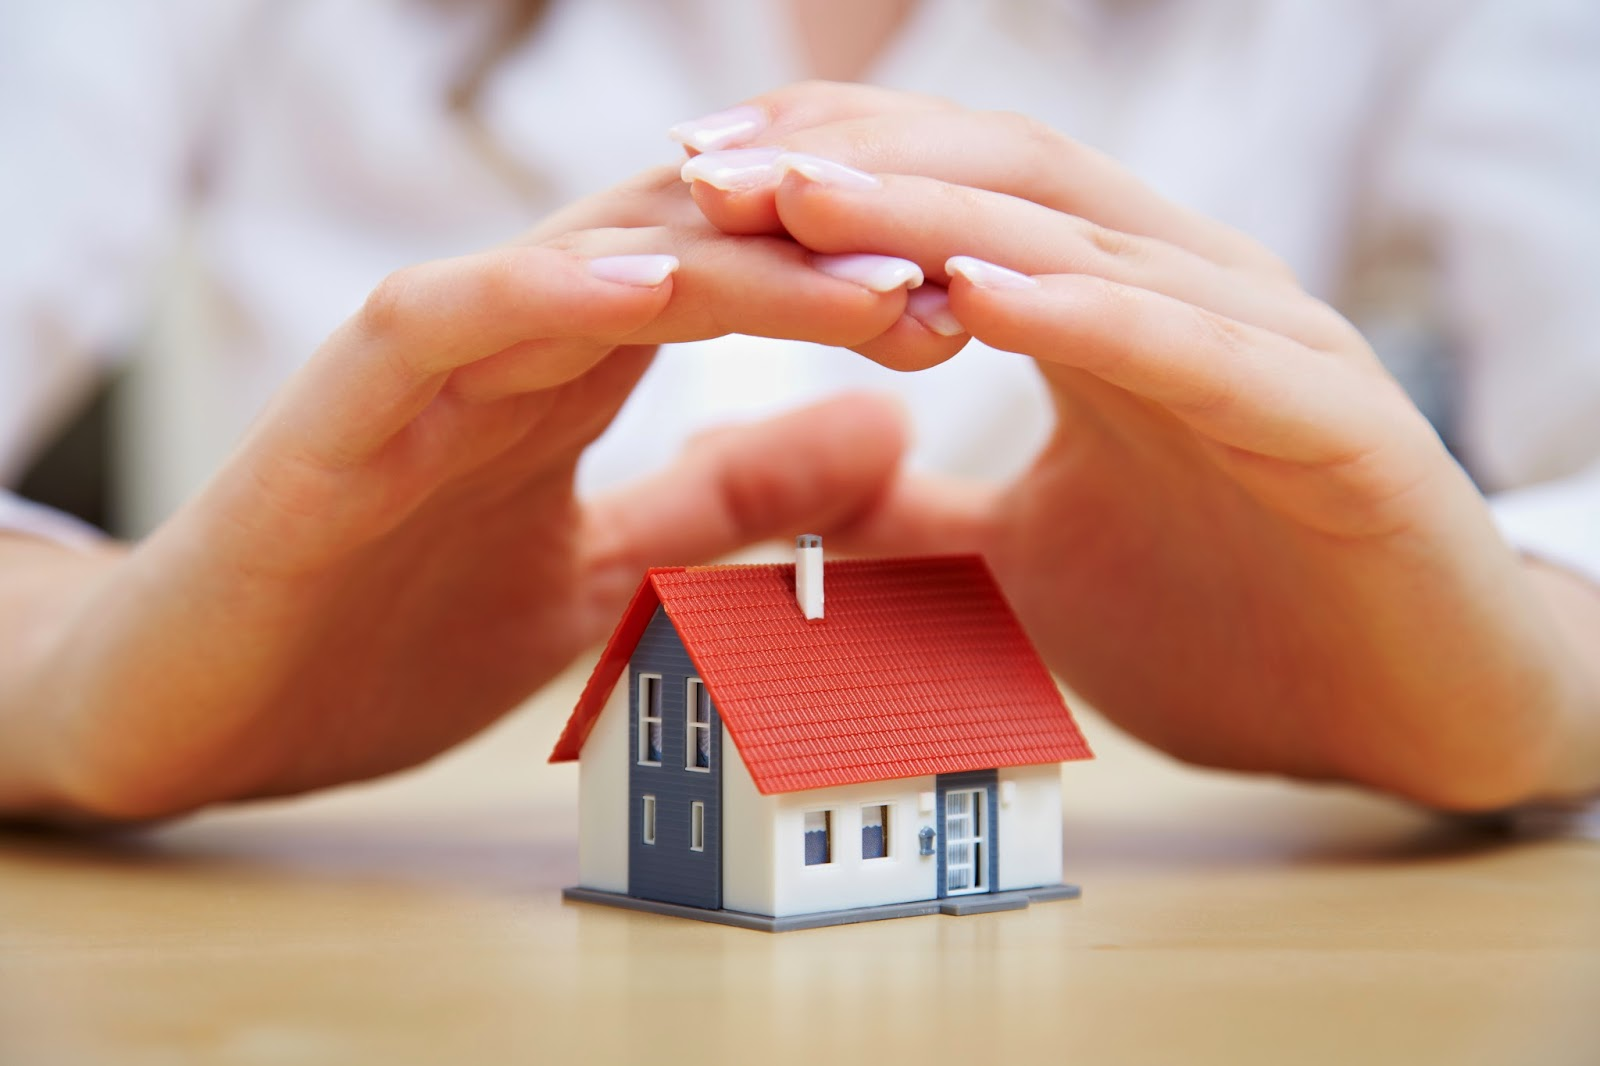 Opting for a Home Insurance